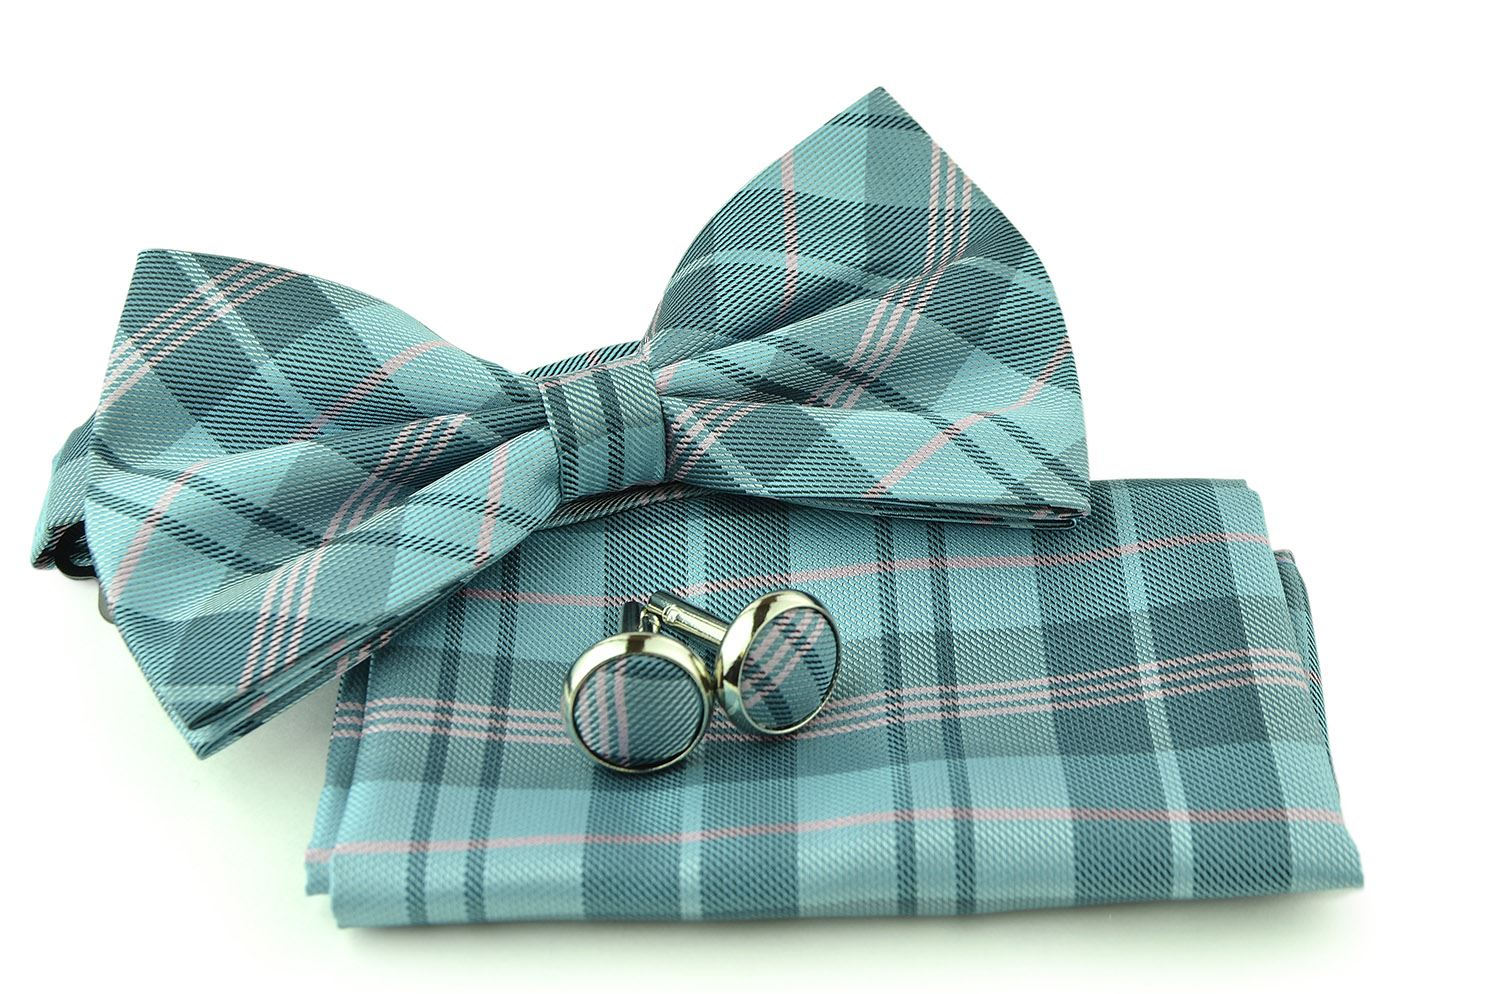 Uomo Vennetto Men's Powder Blue and Pink Plaid Polyester Bow Tie, Hanky and Cufflinks